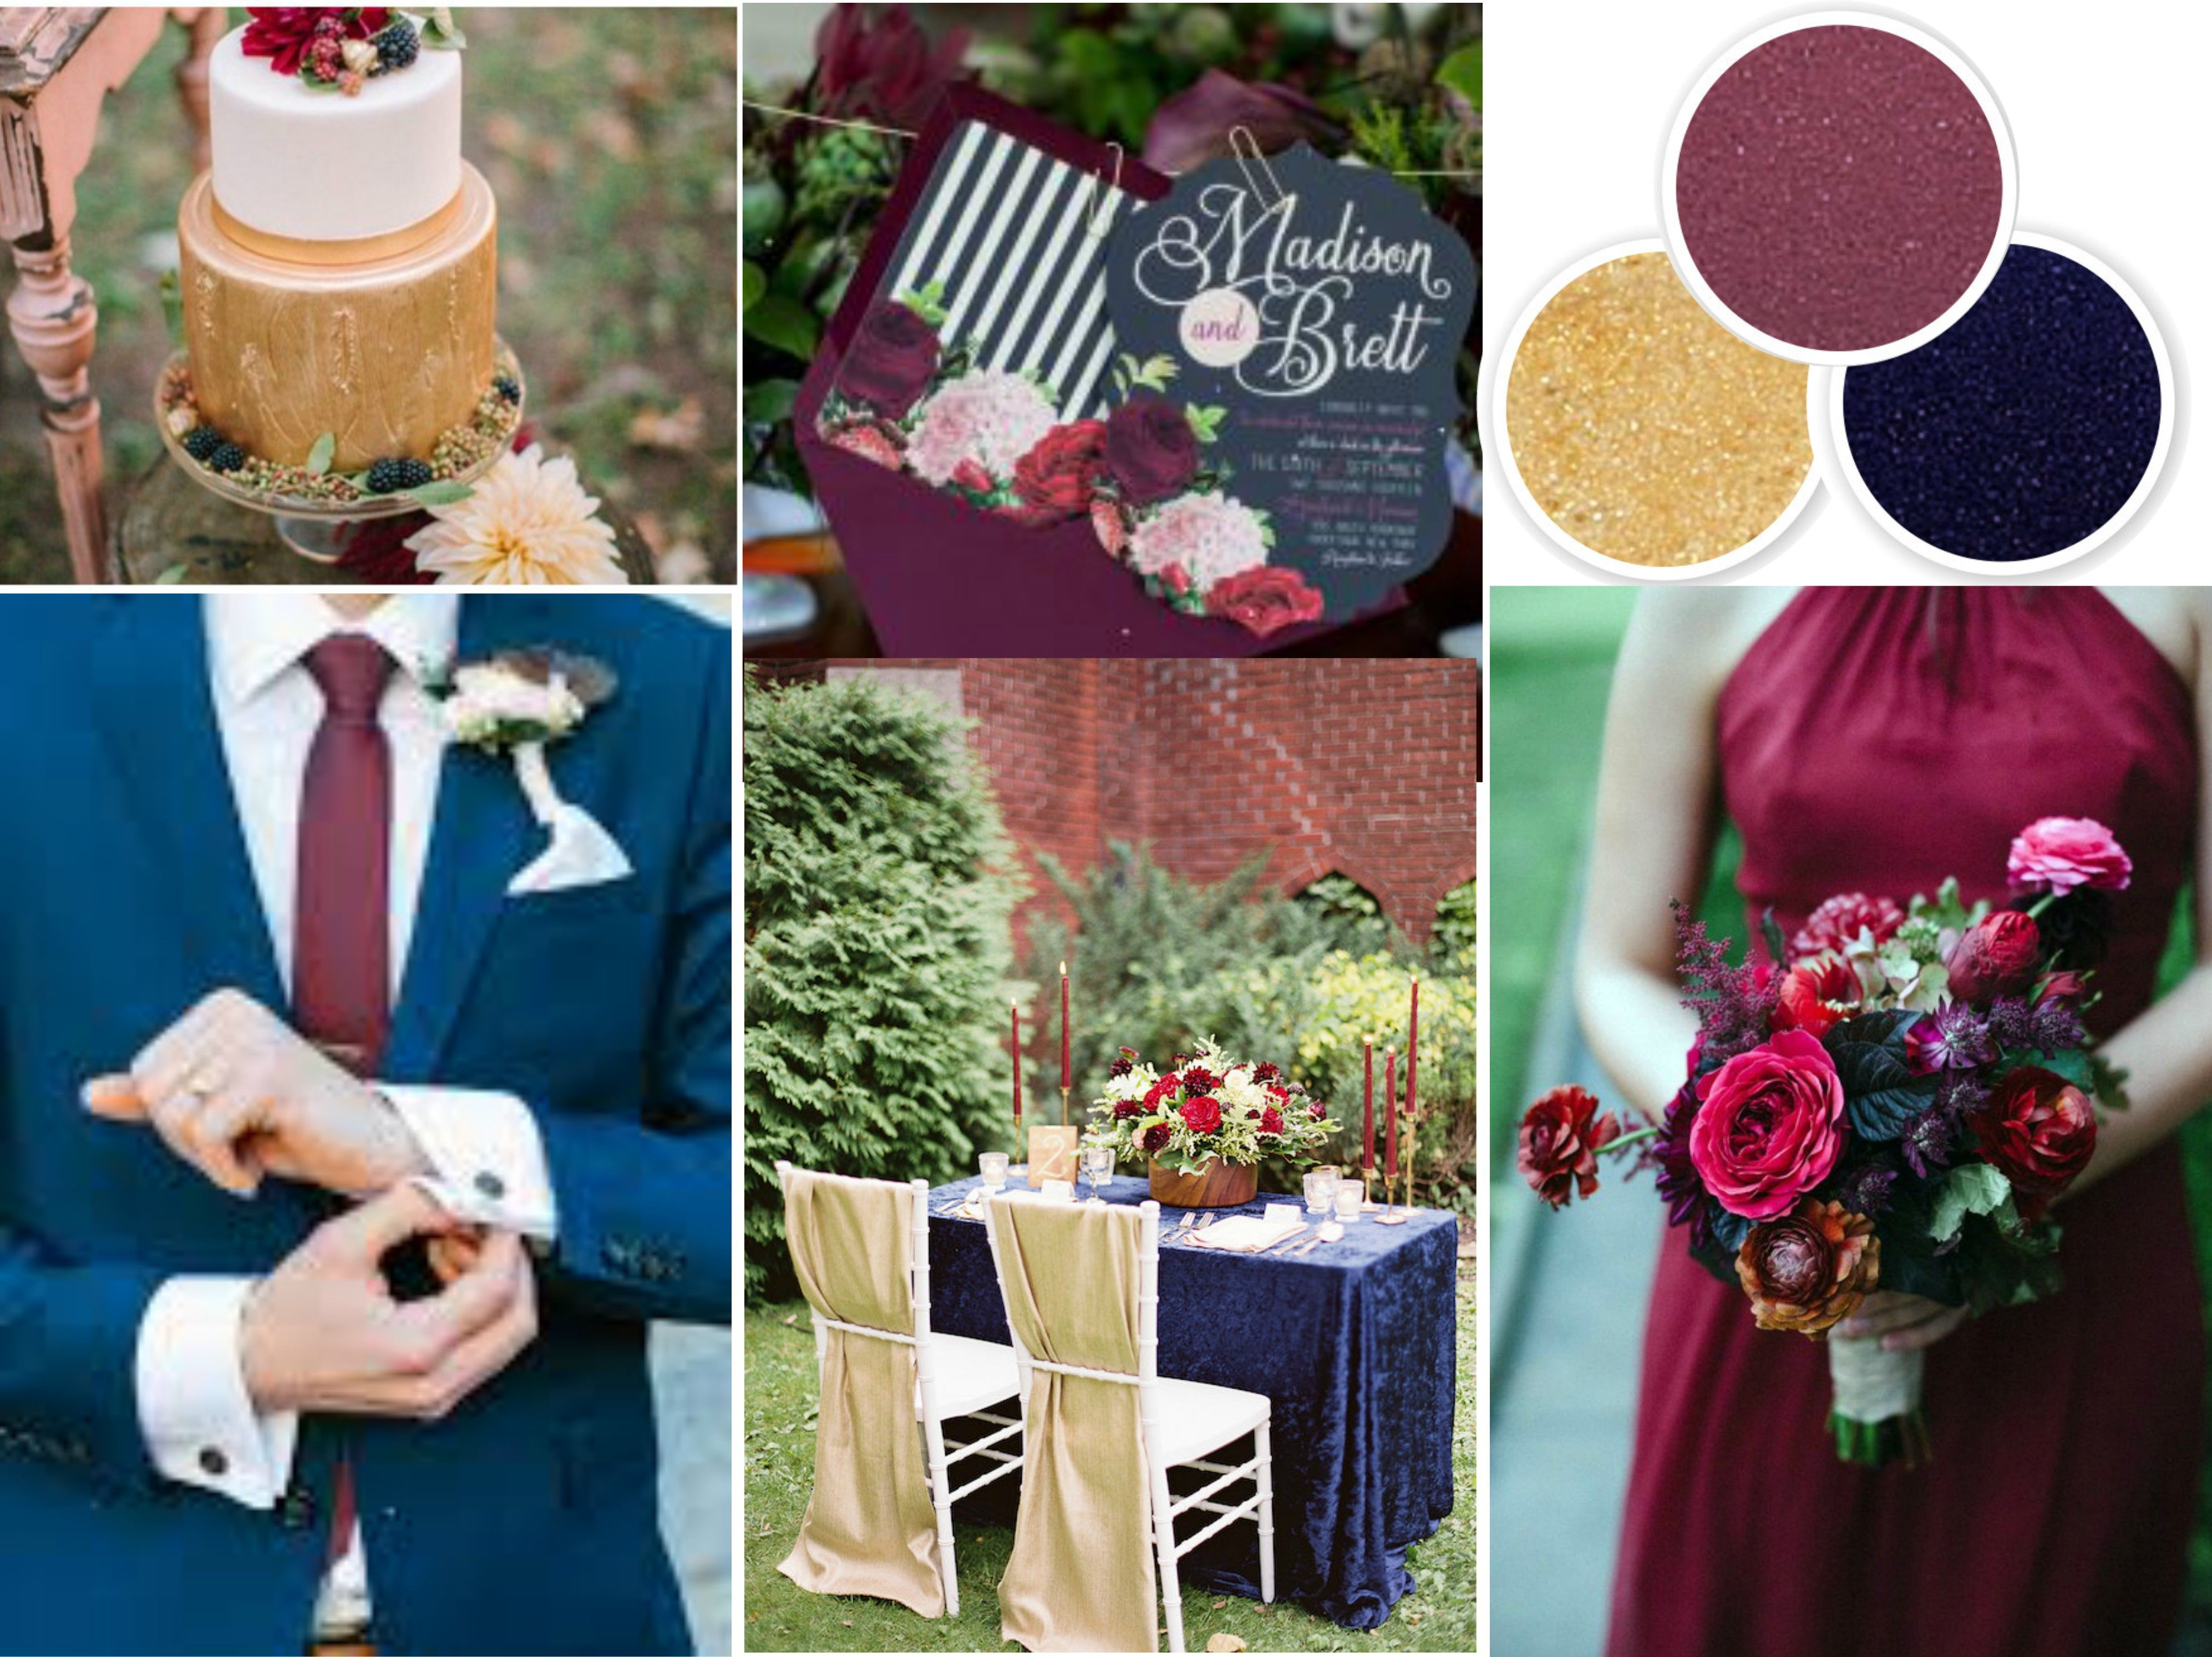 Transition into a fall wedding or winter wedding with navy, wine, and gold  wedding colors. Read on for wedding color combination ideas